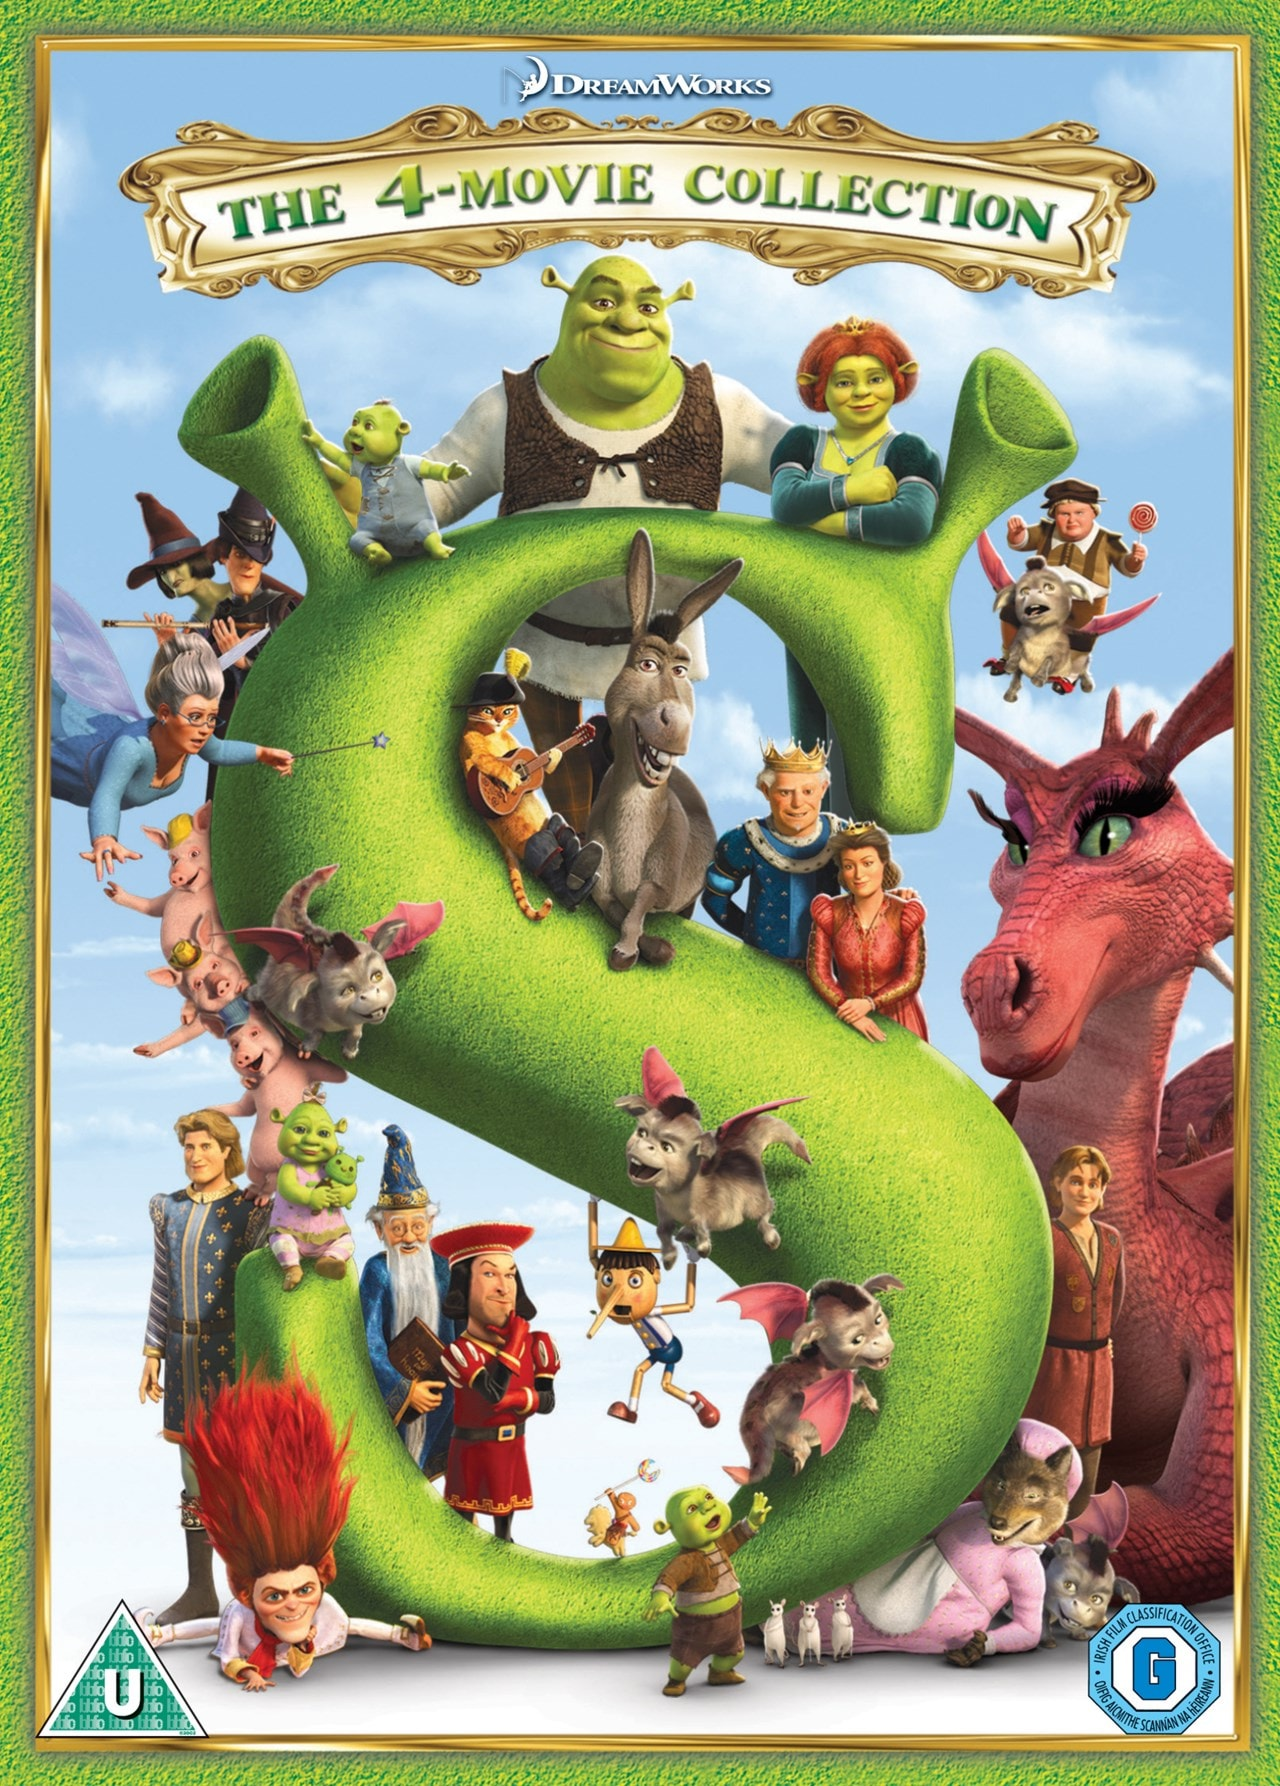 Shrek: The 4-movie Collection - 1